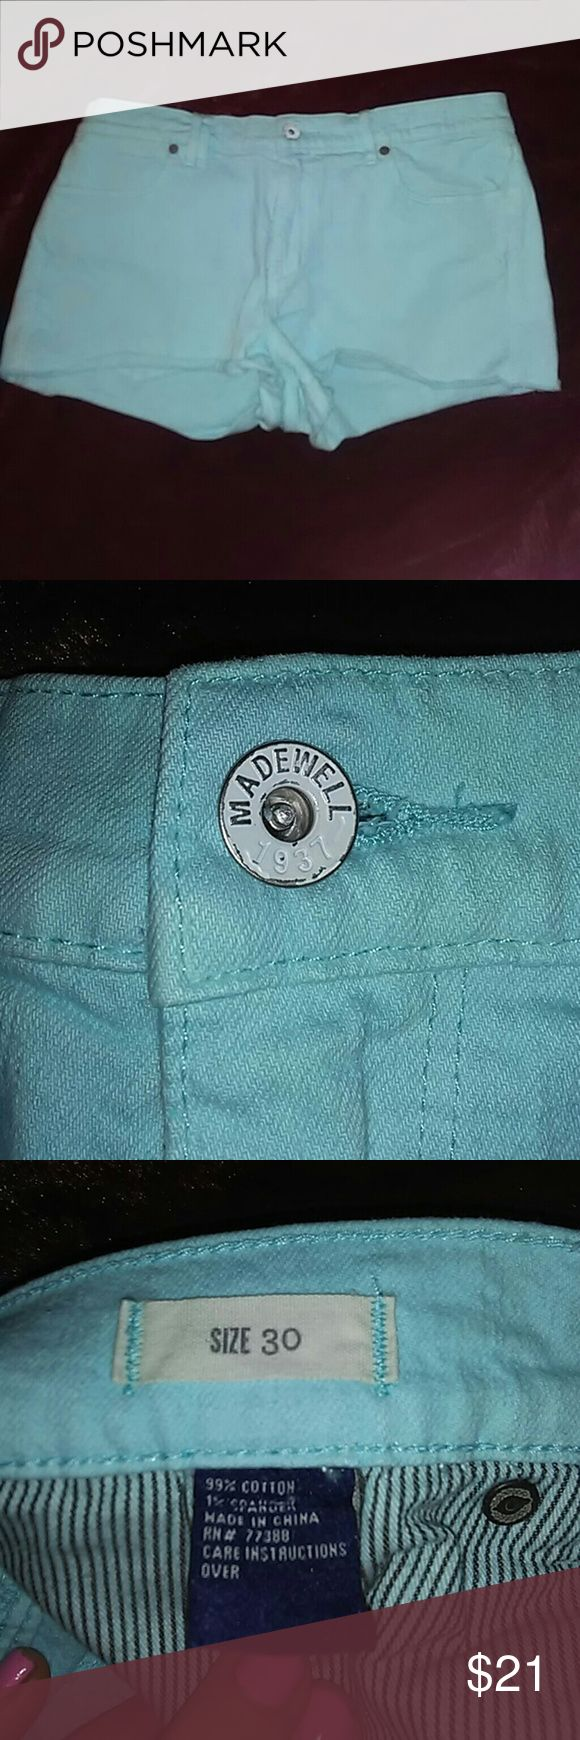 Madewell size 30 aqua blue jean shorts These adorable Madewell aqua blue short shorts are super cute and well made. This is a re-posh as i am in my 30's and short shorts are not my jam anymore...but you girls in your 20's can rock 'em!! Super good pre-owned condition as i only wore them around my house...(thinking of my younger years..sigh) LOL. Anyway. Bundle and Save! I LOVE offers and will love you if you make one! Madewell Shorts Jean Shorts